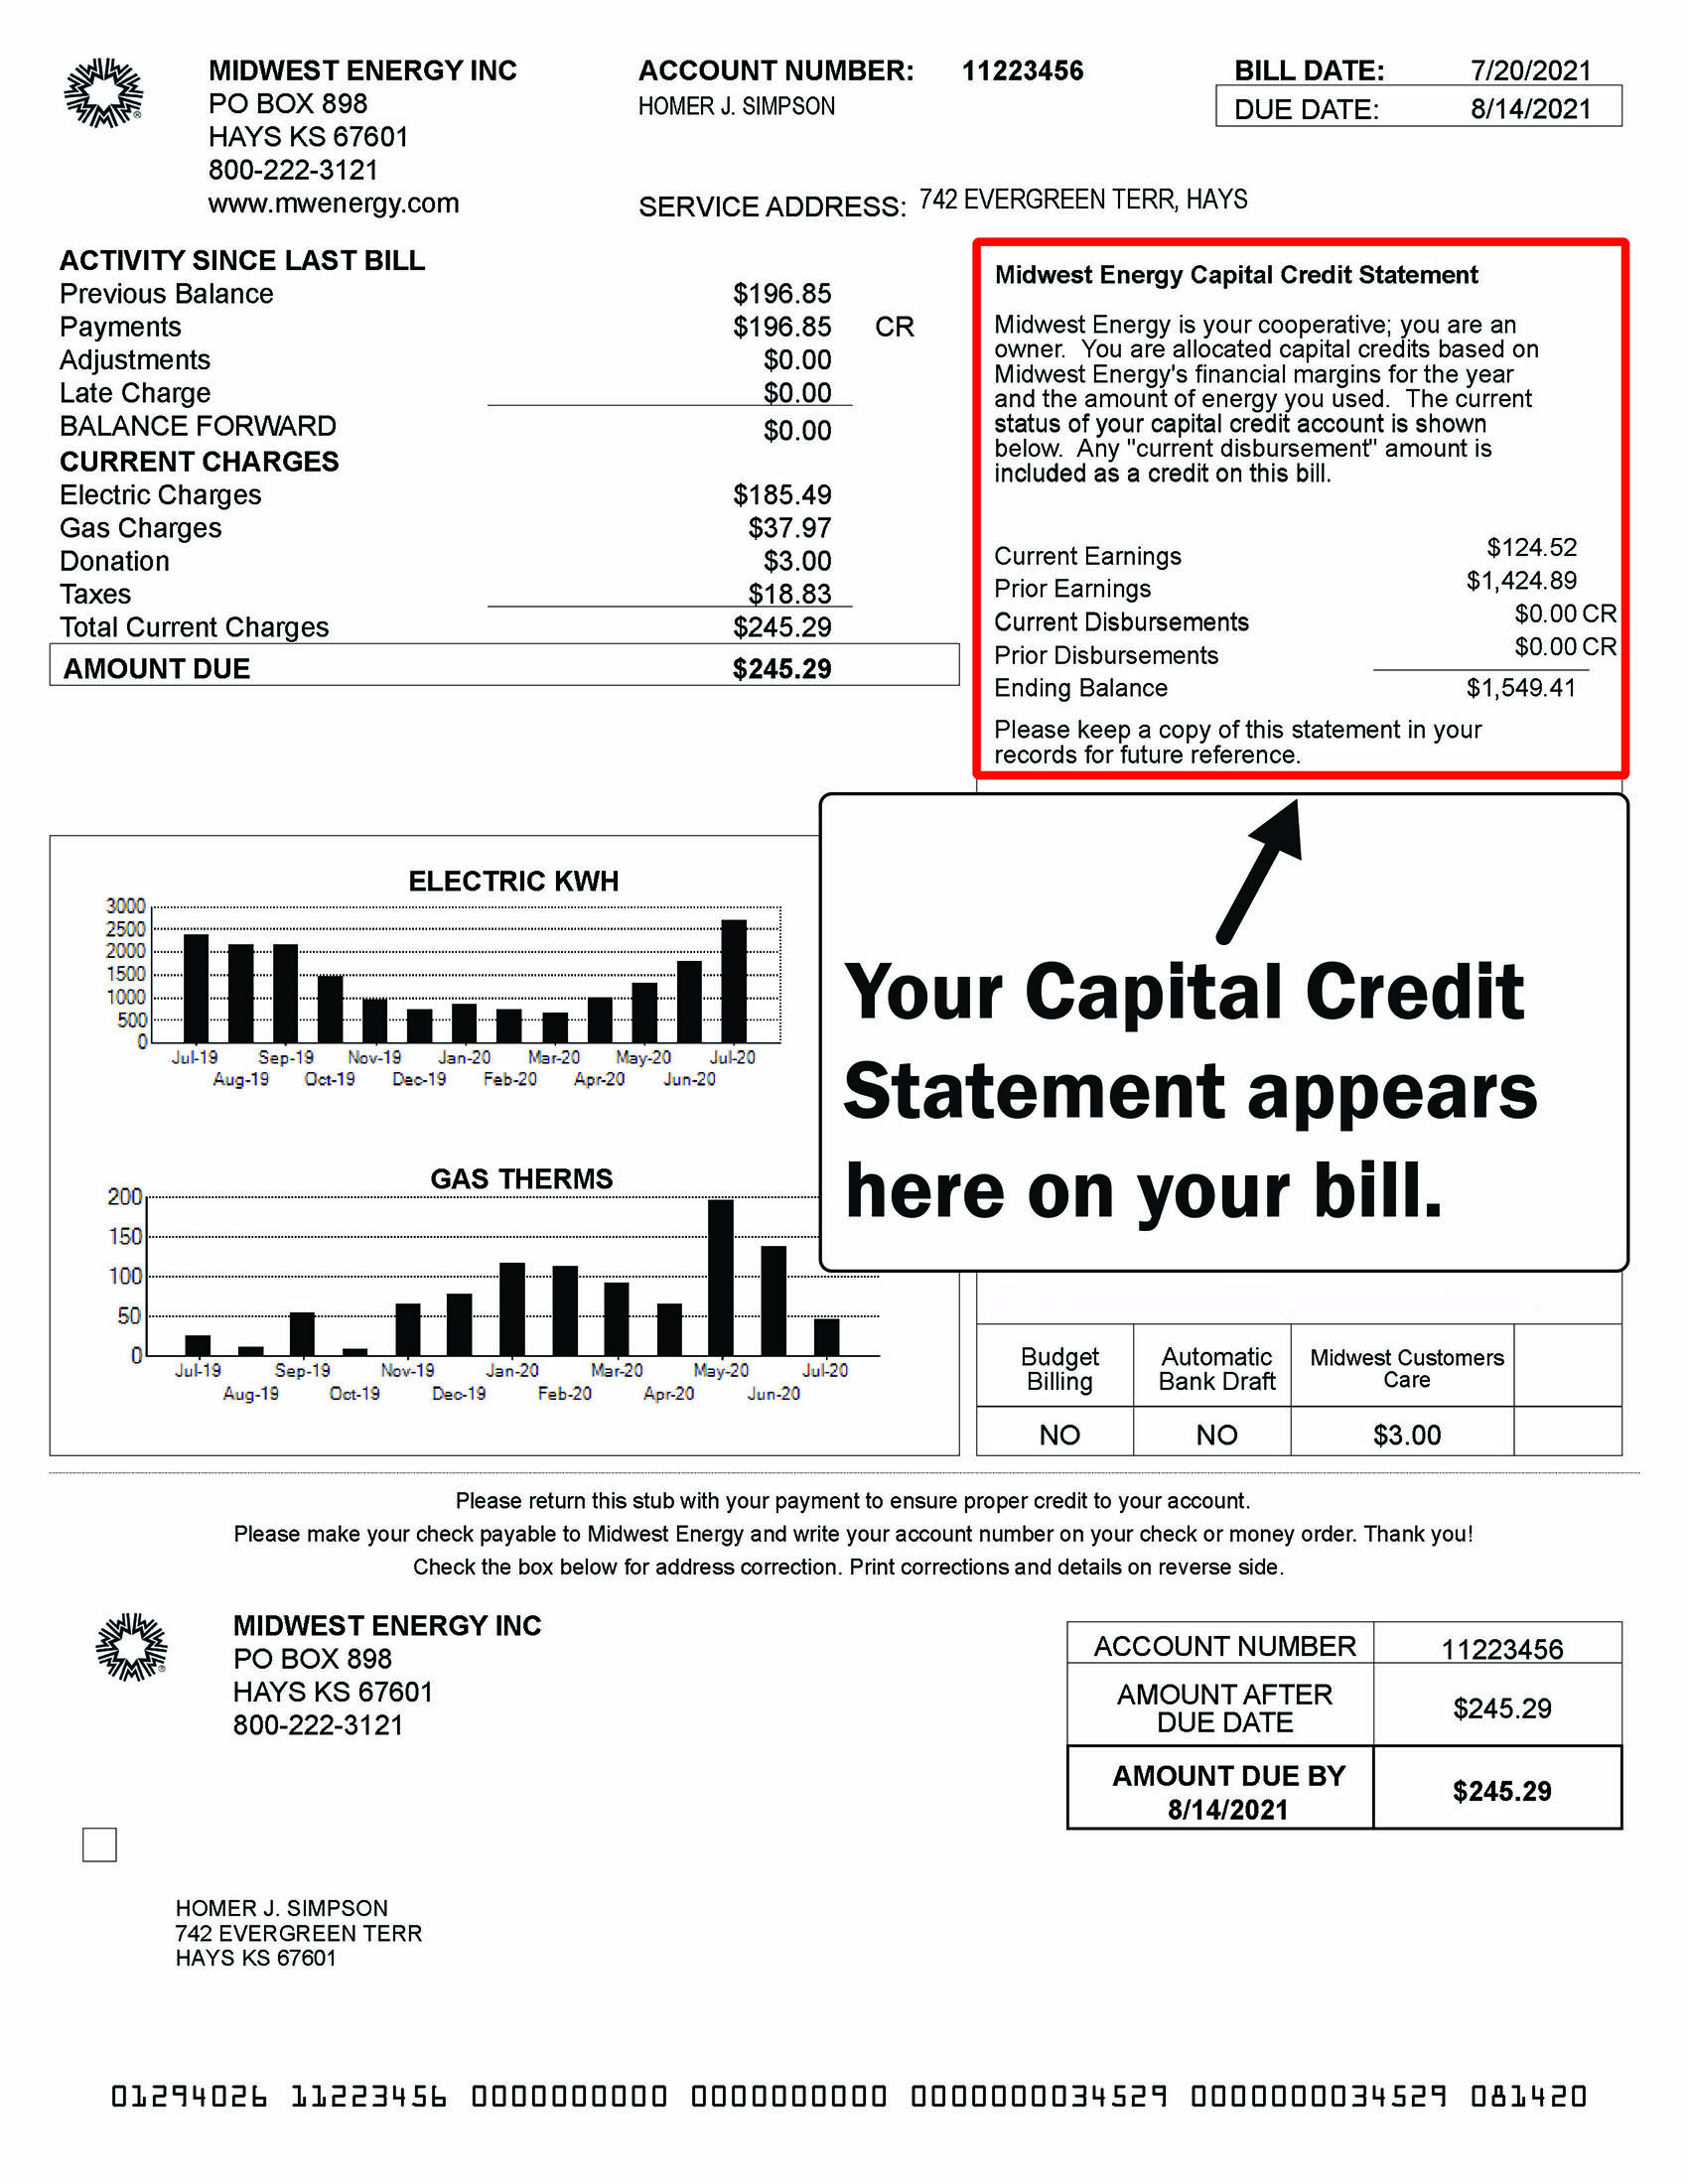 An image of a Midwest Energy bill with the Captial Credit Statement highlighted.